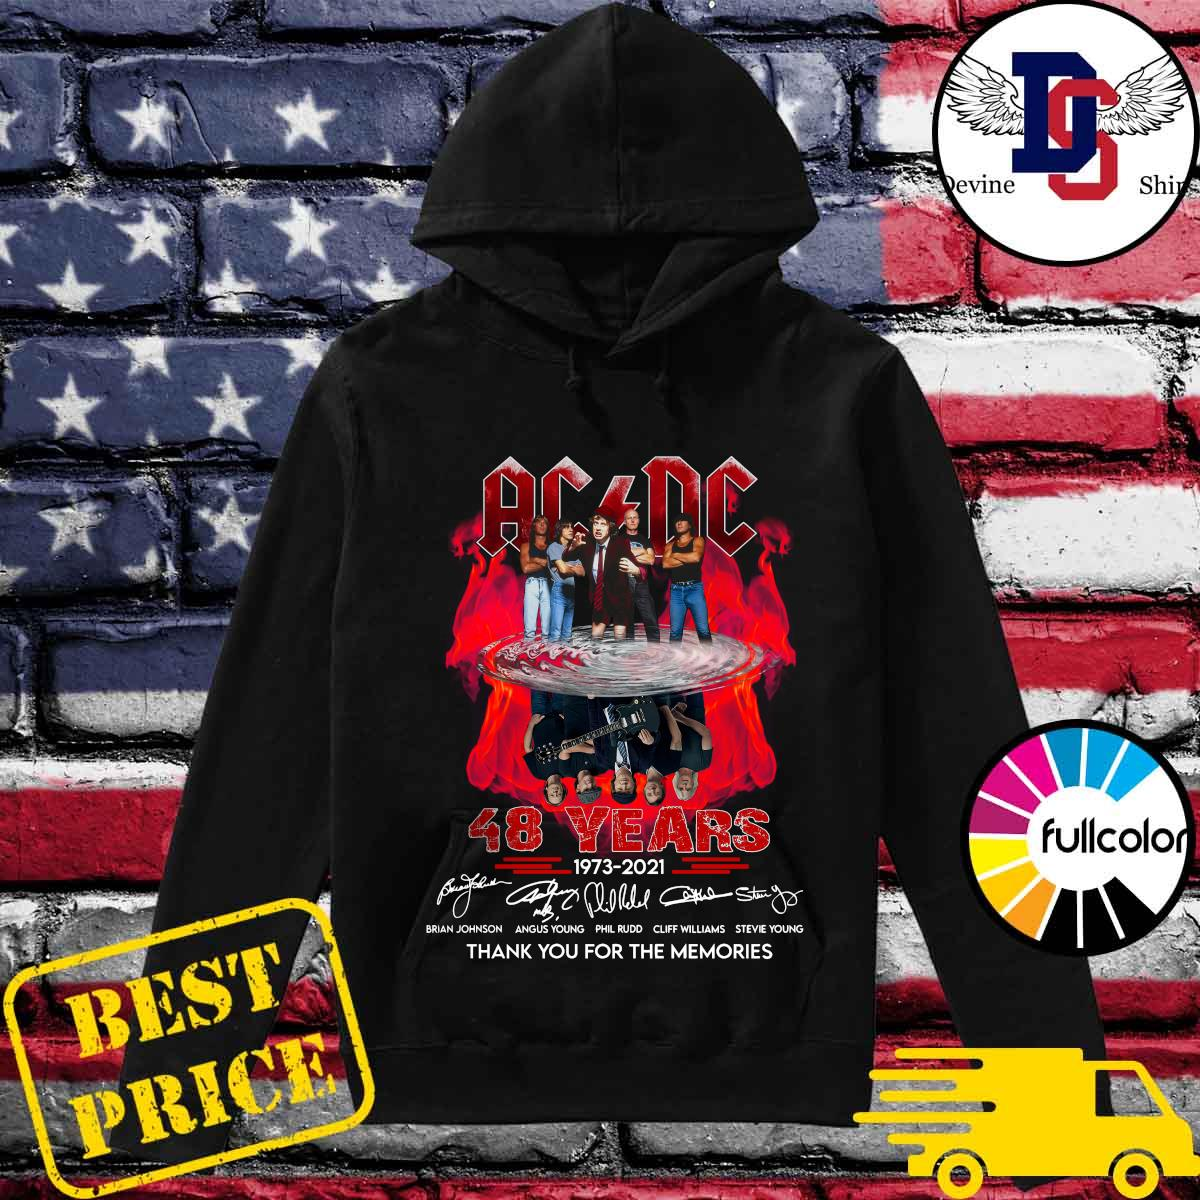 Official Thank You For The Memories Of The Ad Dc Band With 48 Years 1973 2021 Signatures Shirt Hoodie